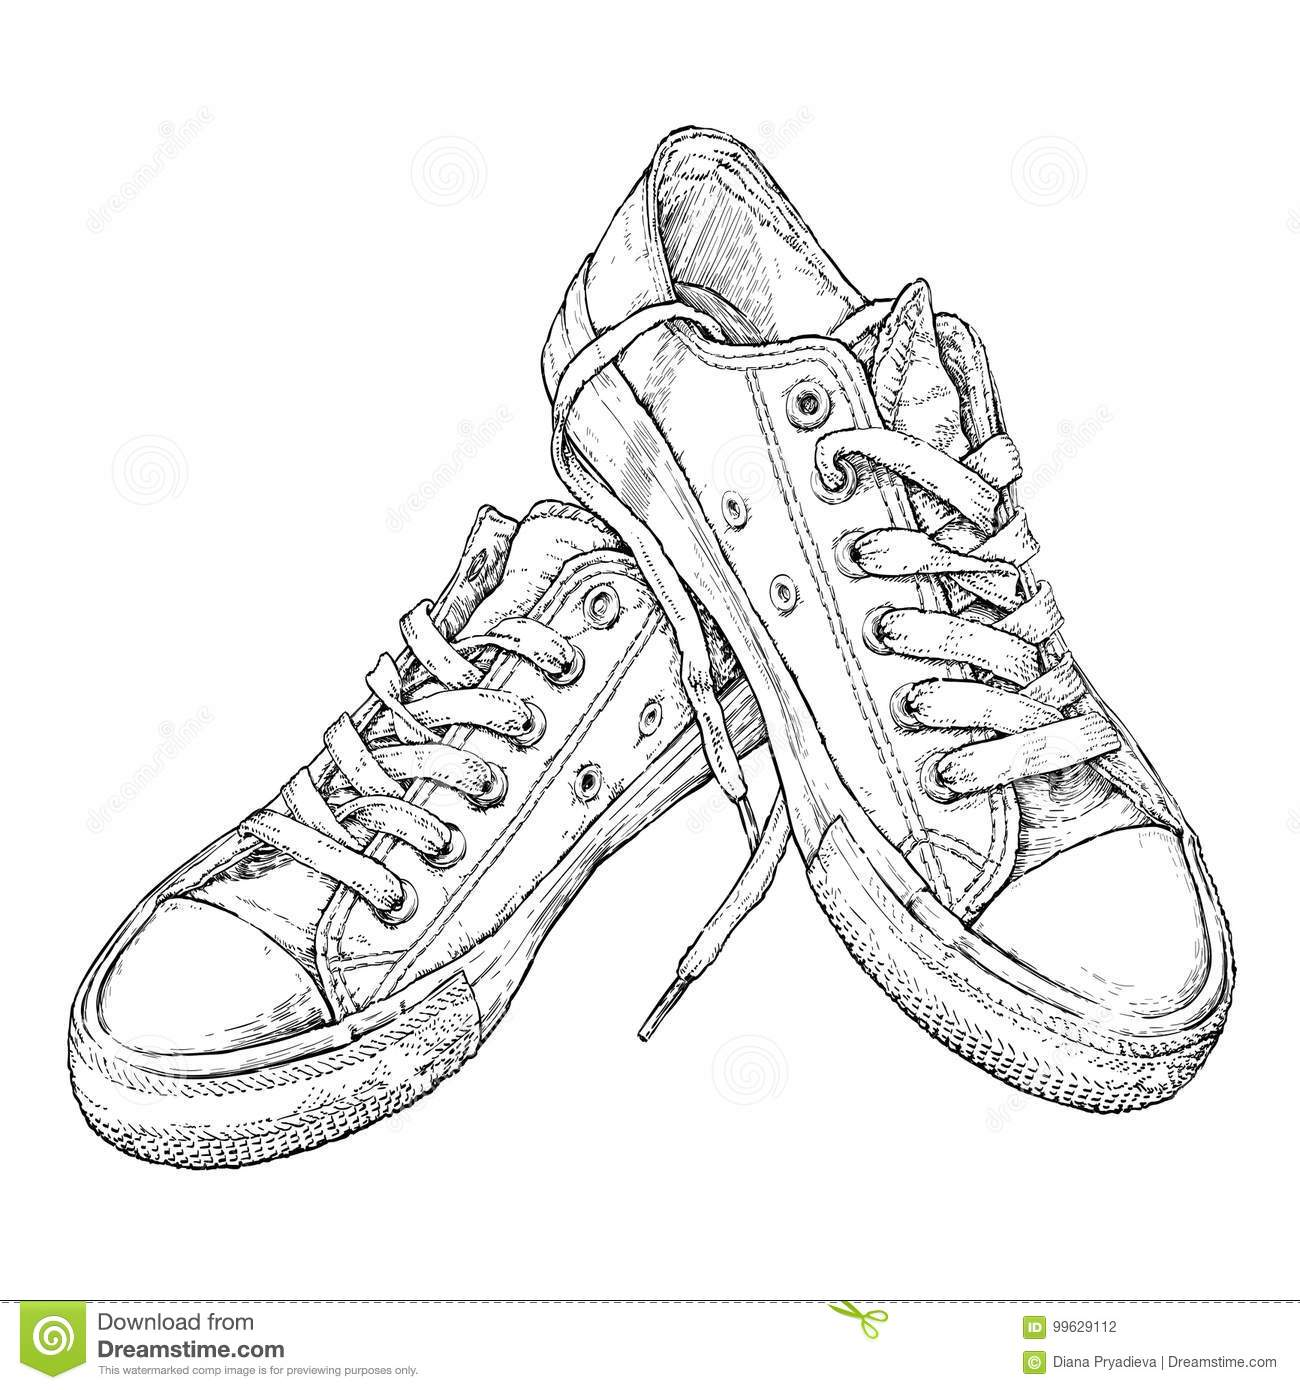 It's just a graphic of Sassy Shoe Drawing Ideas